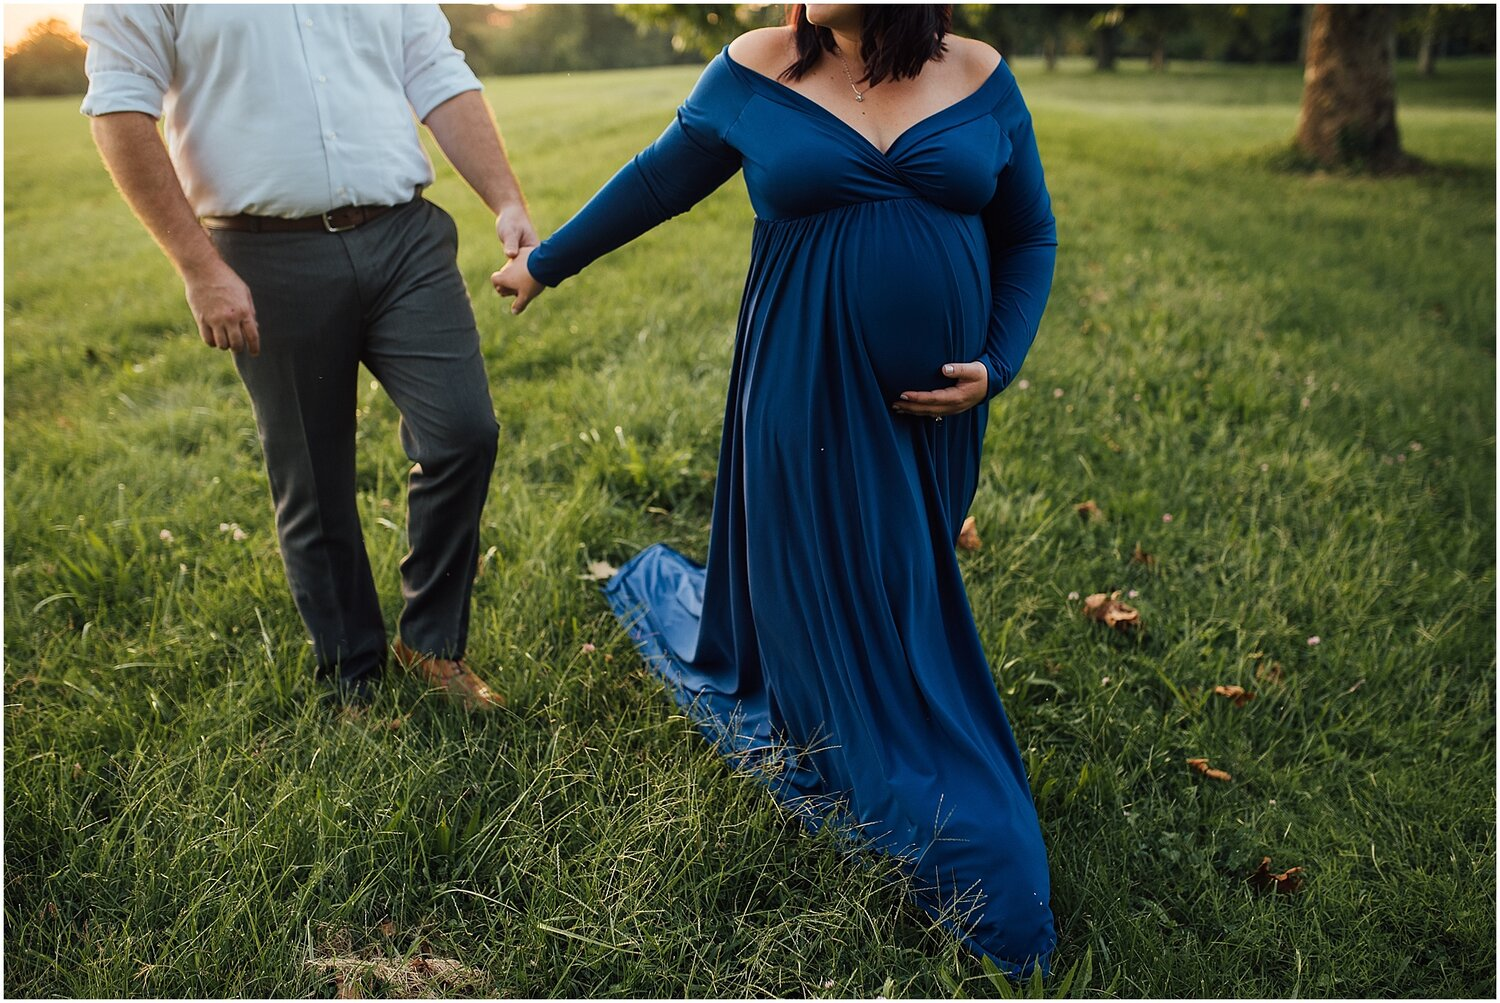 st louis maternity photographer katie eldridge-131.jpg